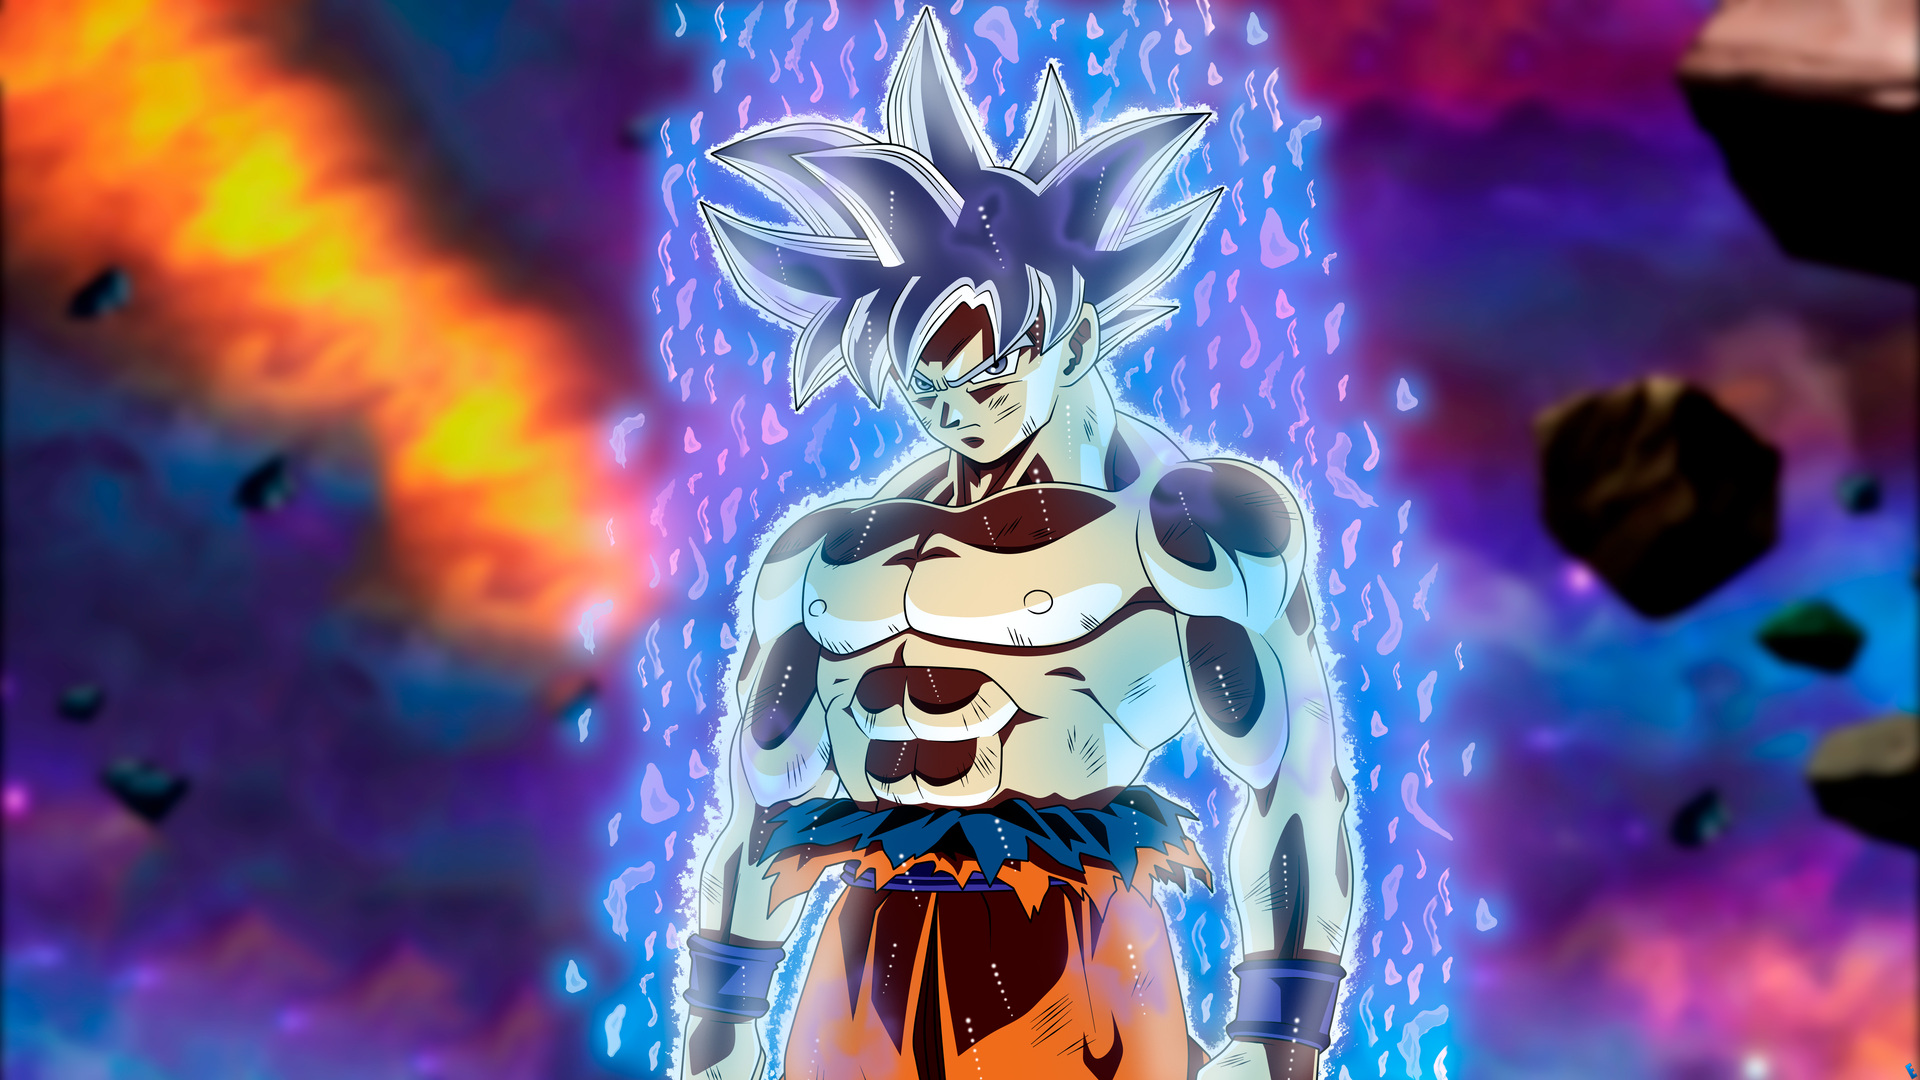 Goku Ultra Instinct Wallpaper 1080p: 1920x1080 Goku Migatte No Gokui Perfecto Ultra Instinct